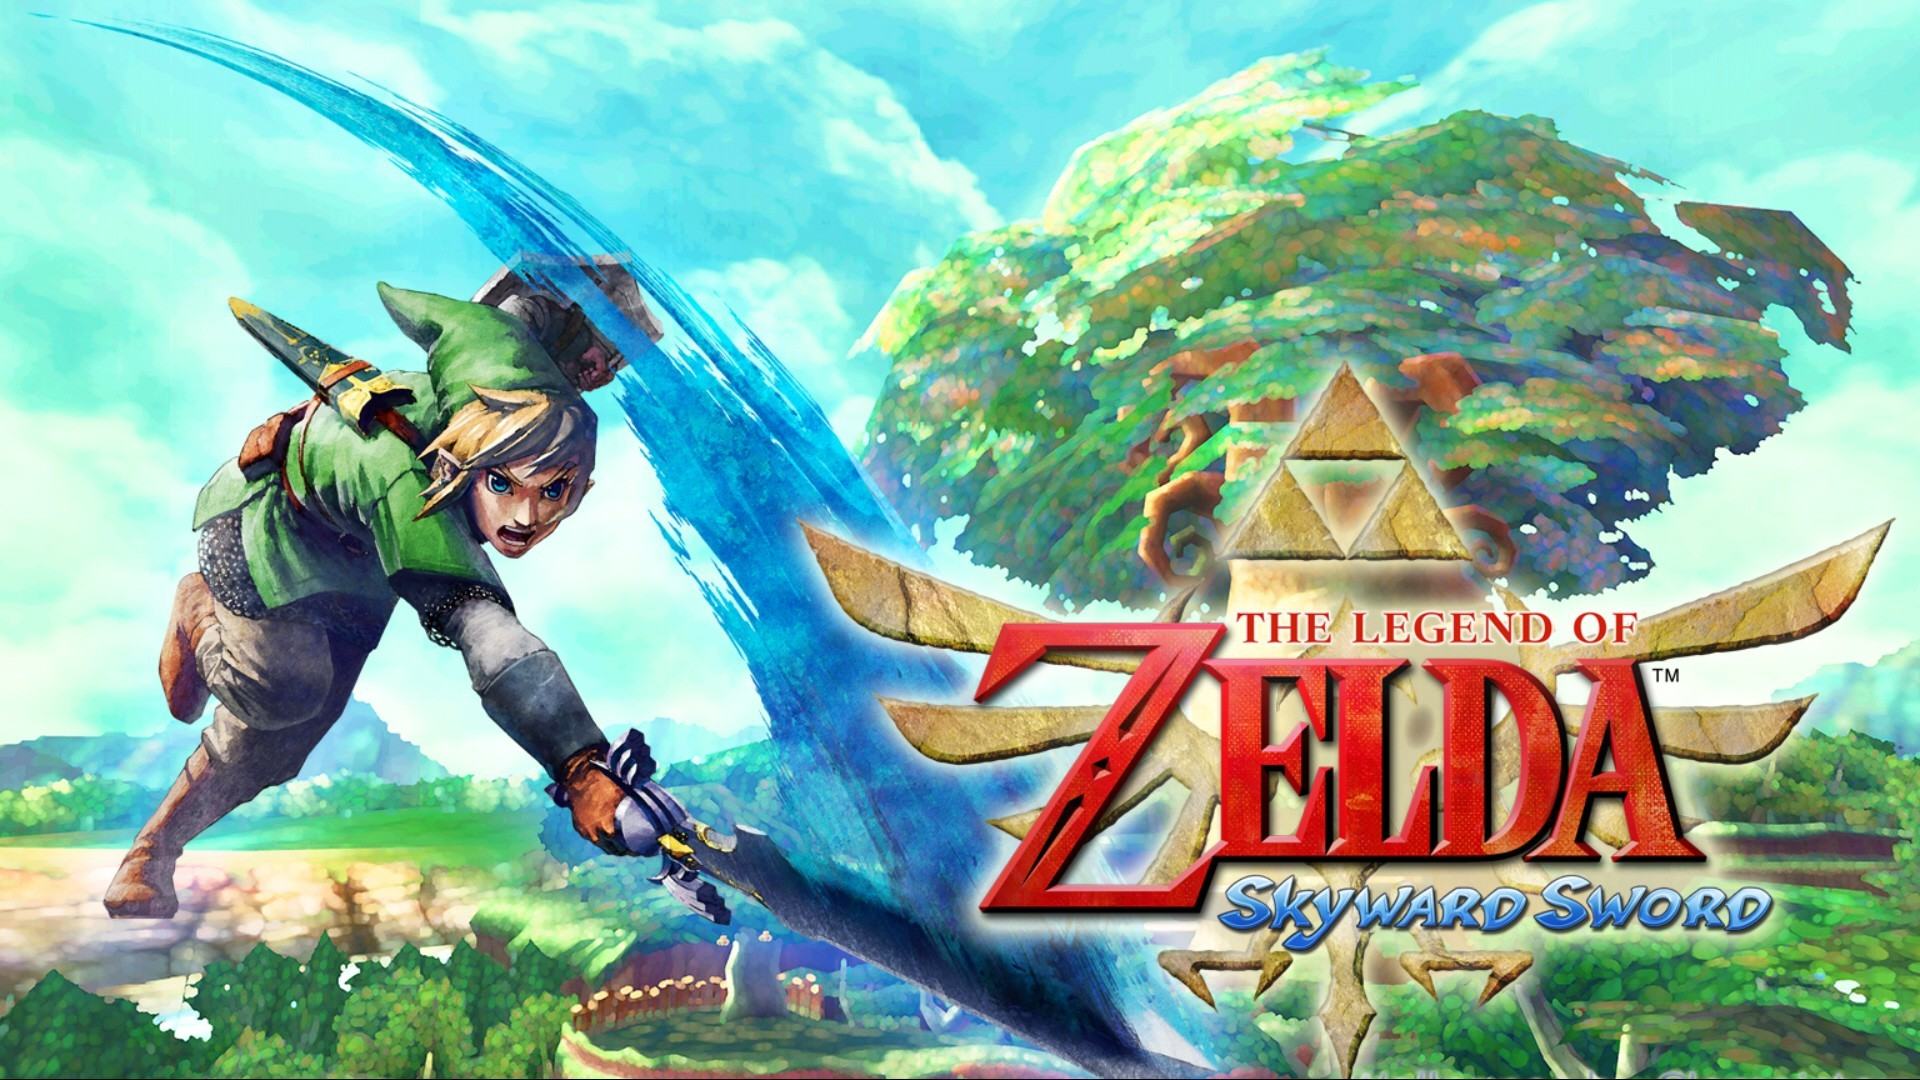 1920x1080 The Legend Of Zelda: Skyward Sword HD Wallpaper HD